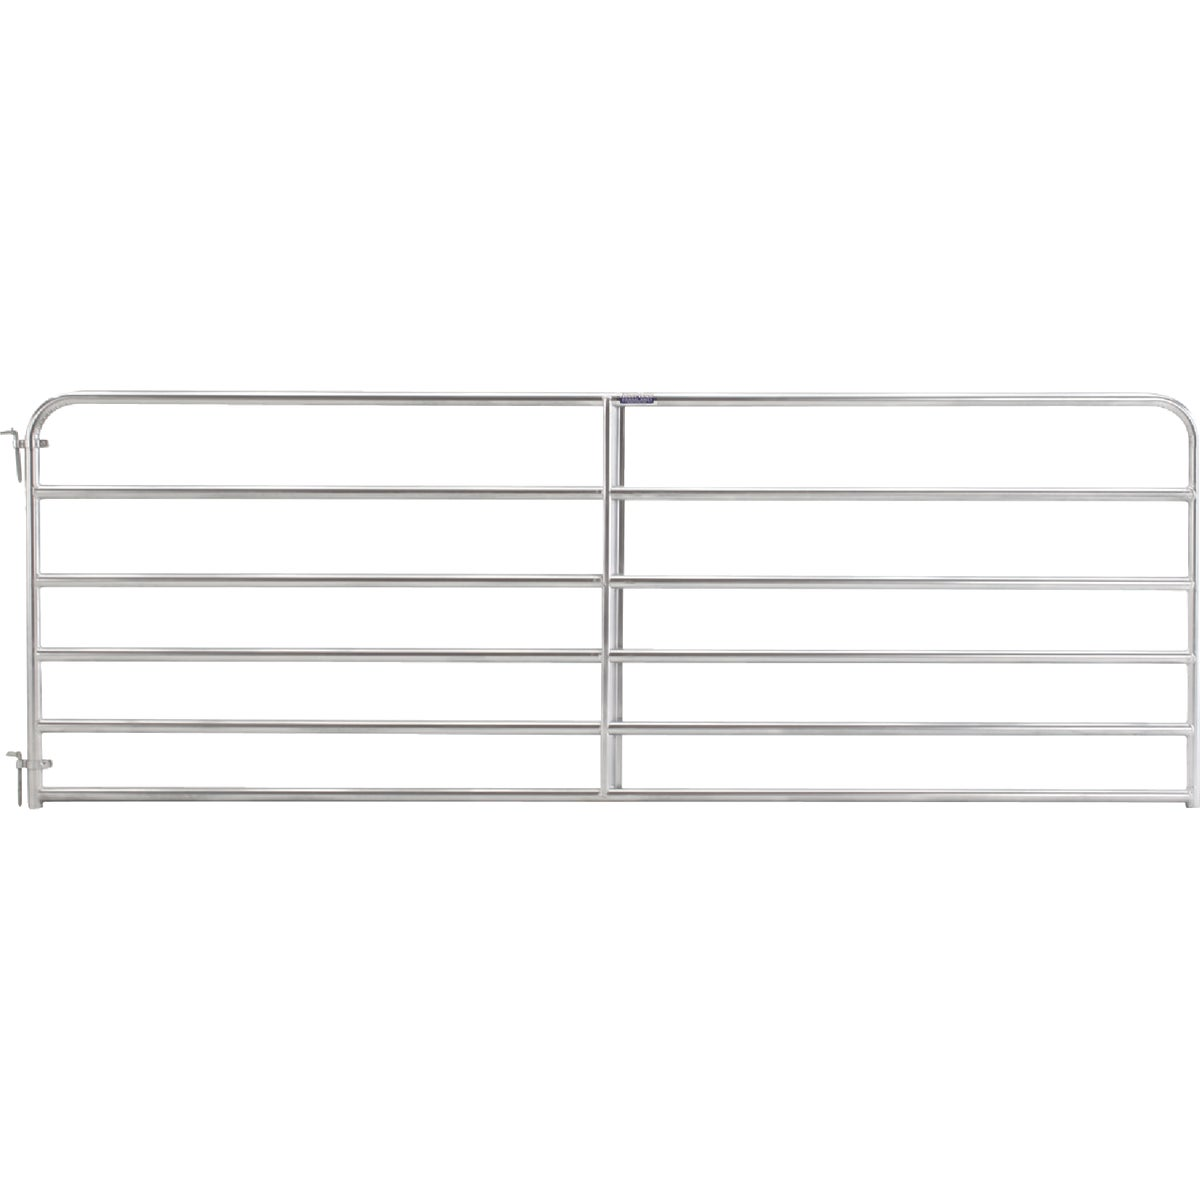 12' 19GA GLV TUBE GATE